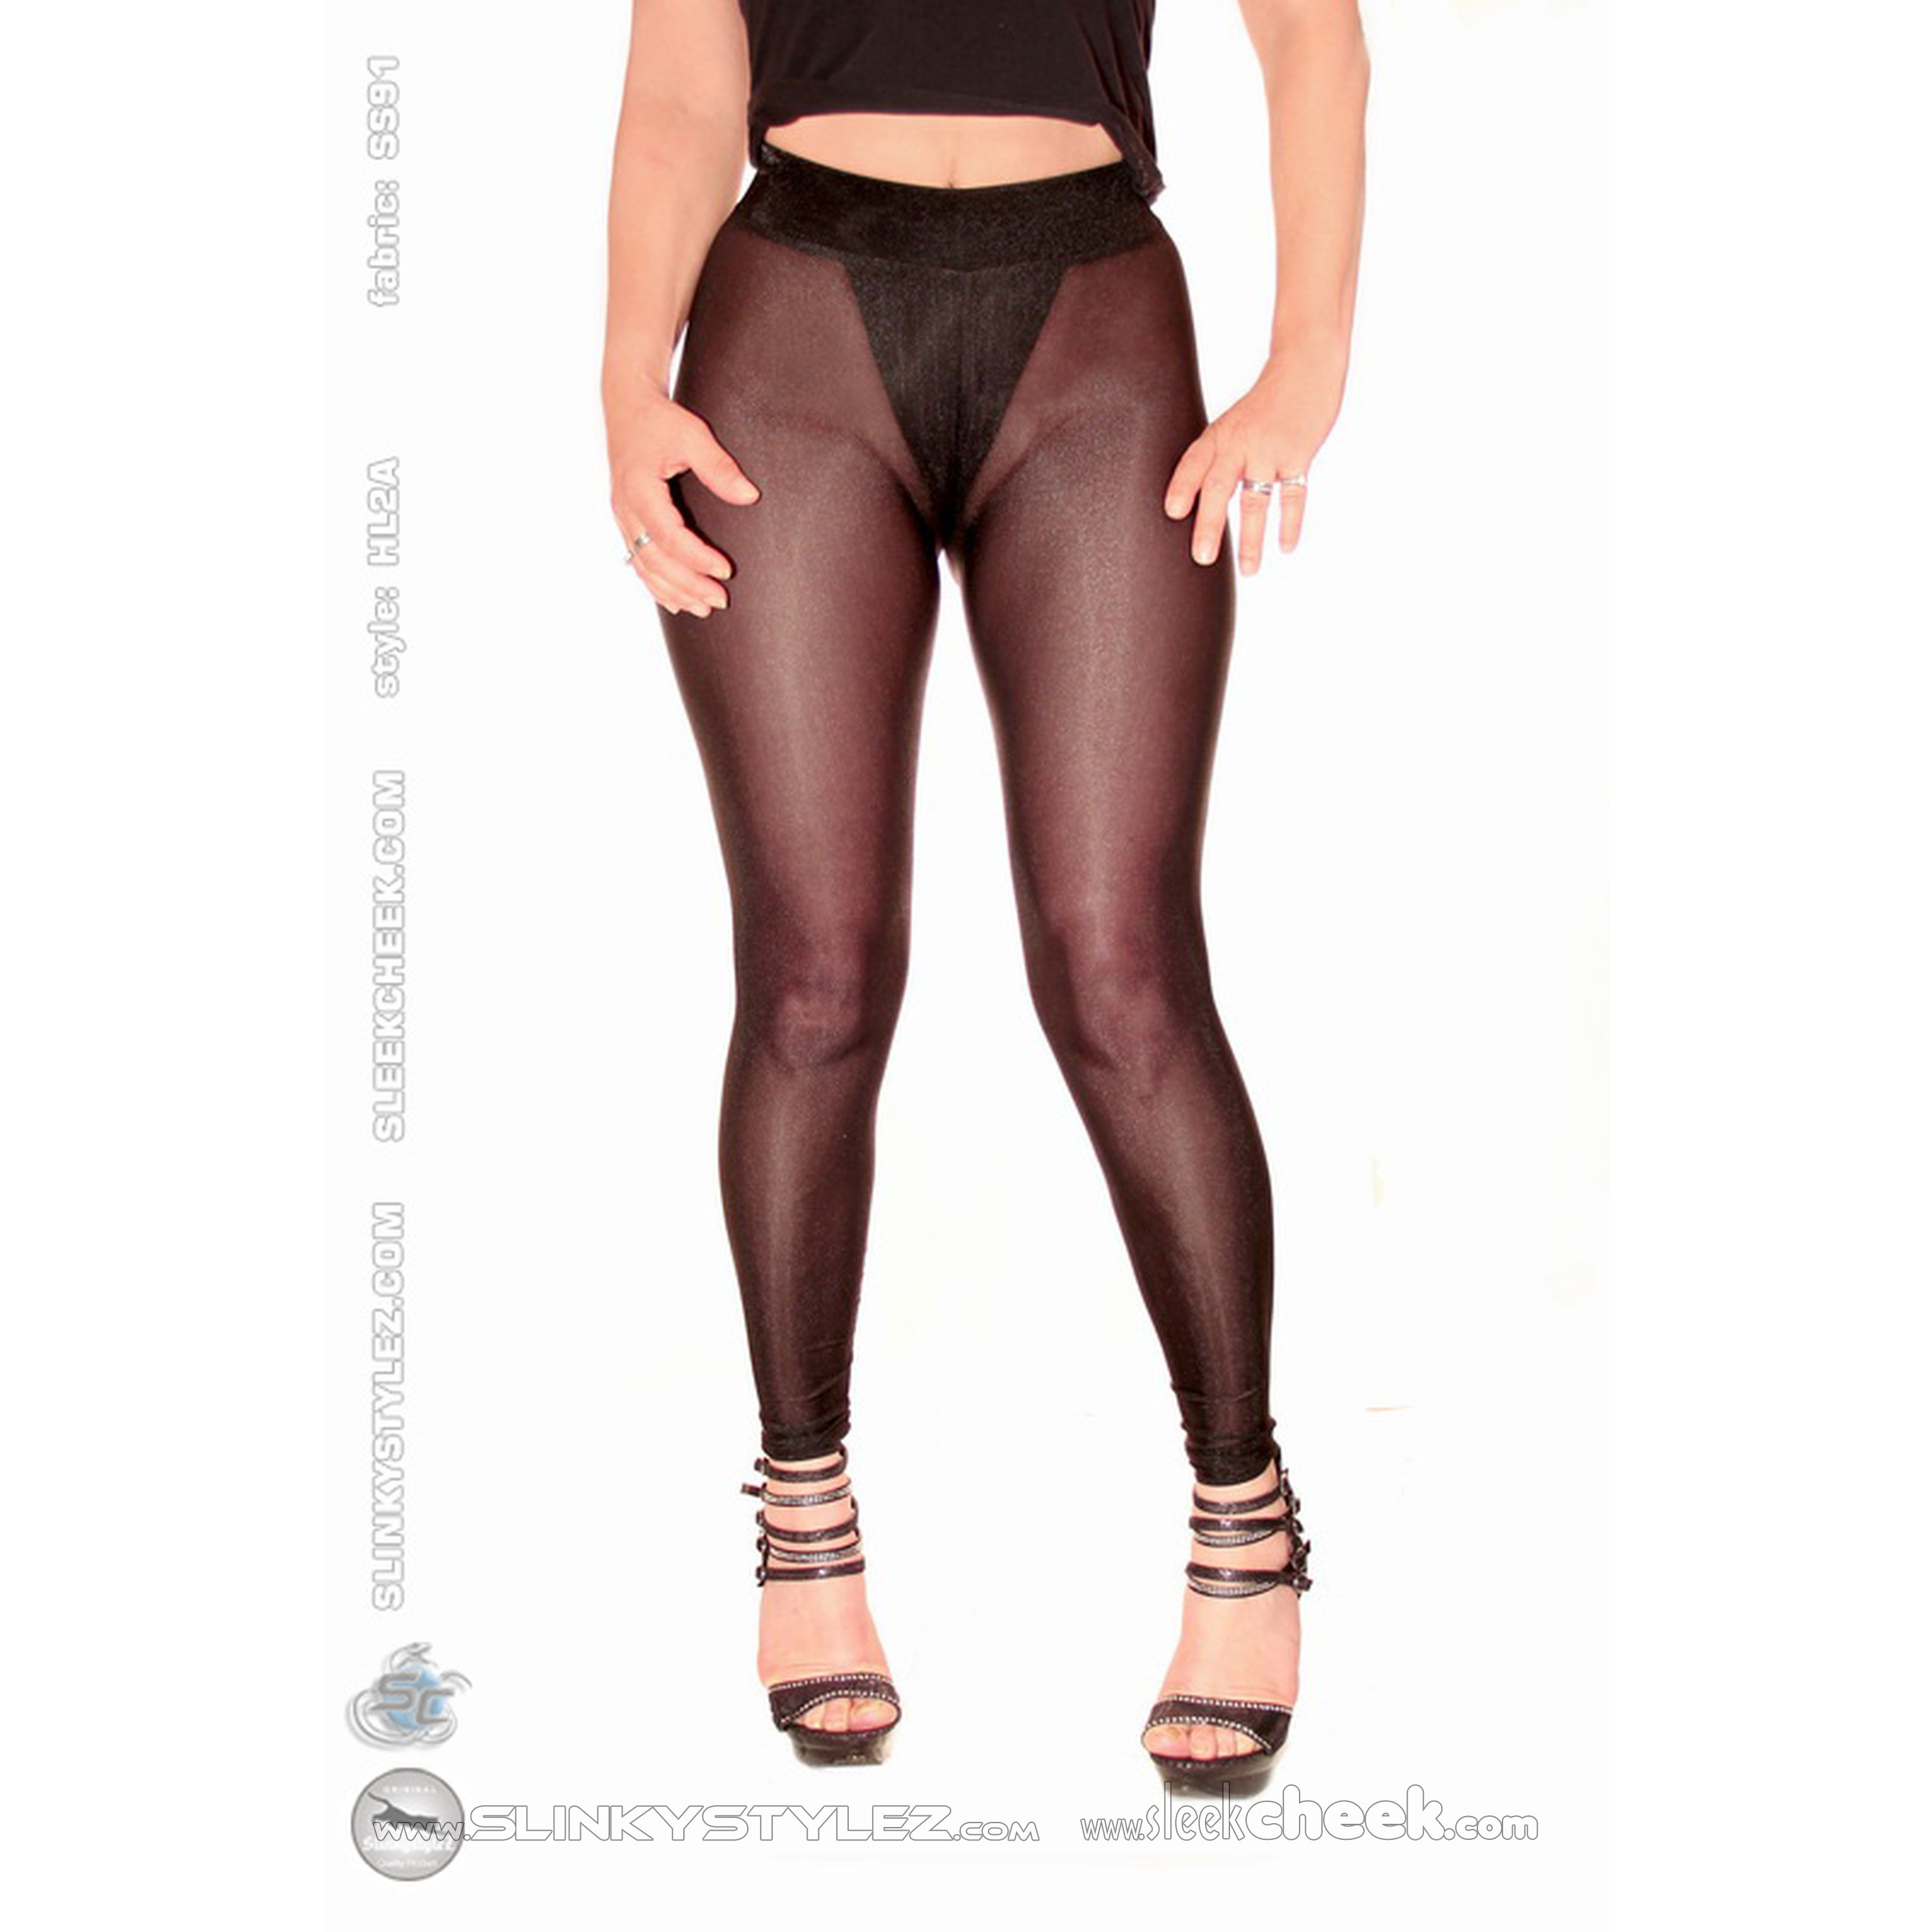 SLEEKCHEEK Classic Leggings HL2A - SheerSpandex 91 BLACK - CUSTOM (L23D)